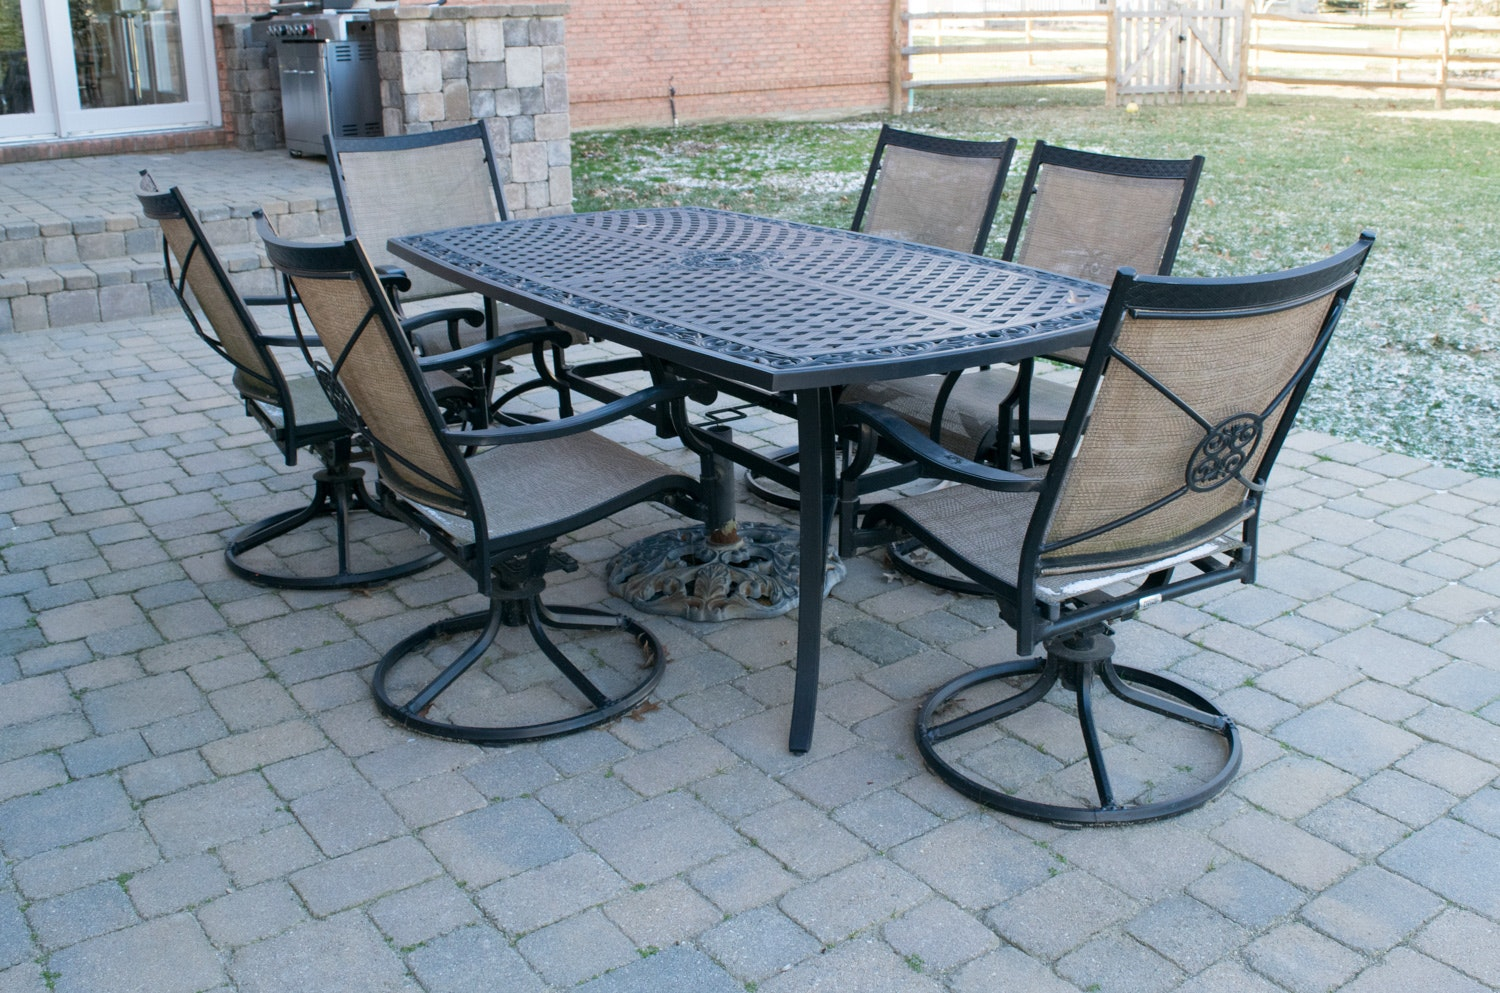 martha stewart patio table and chairs set ebth rh ebth com martha stewart patio table glass martha stewart patio table replacement glass